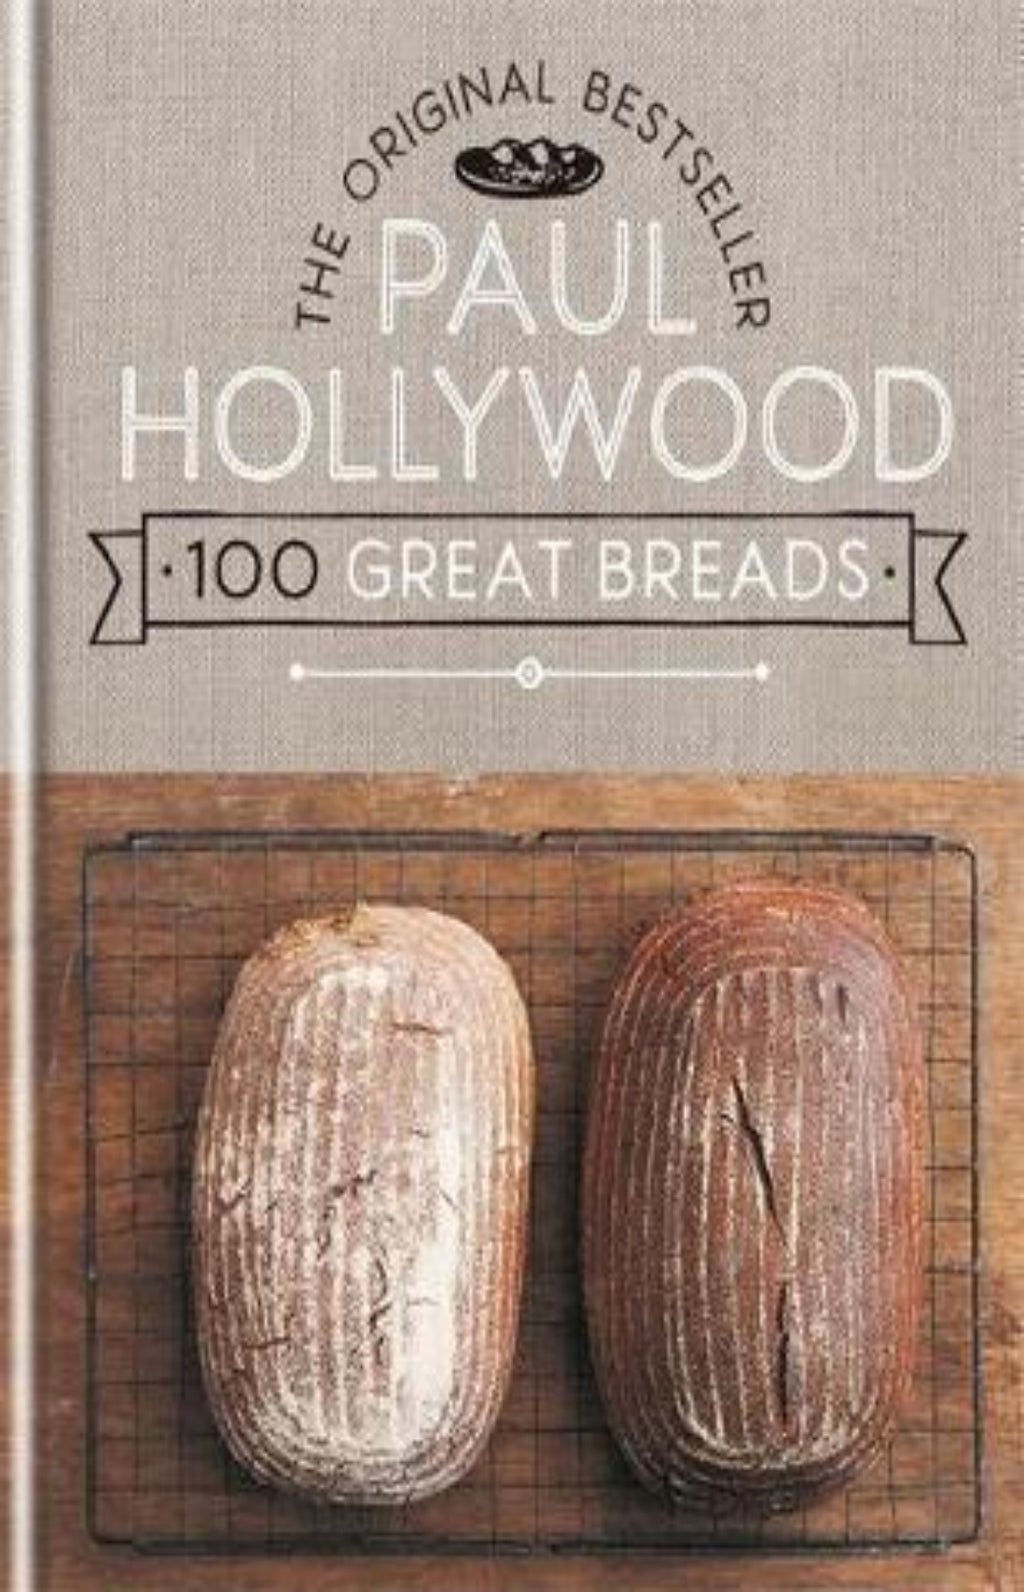 100 Great Breads : The Original Bestseller